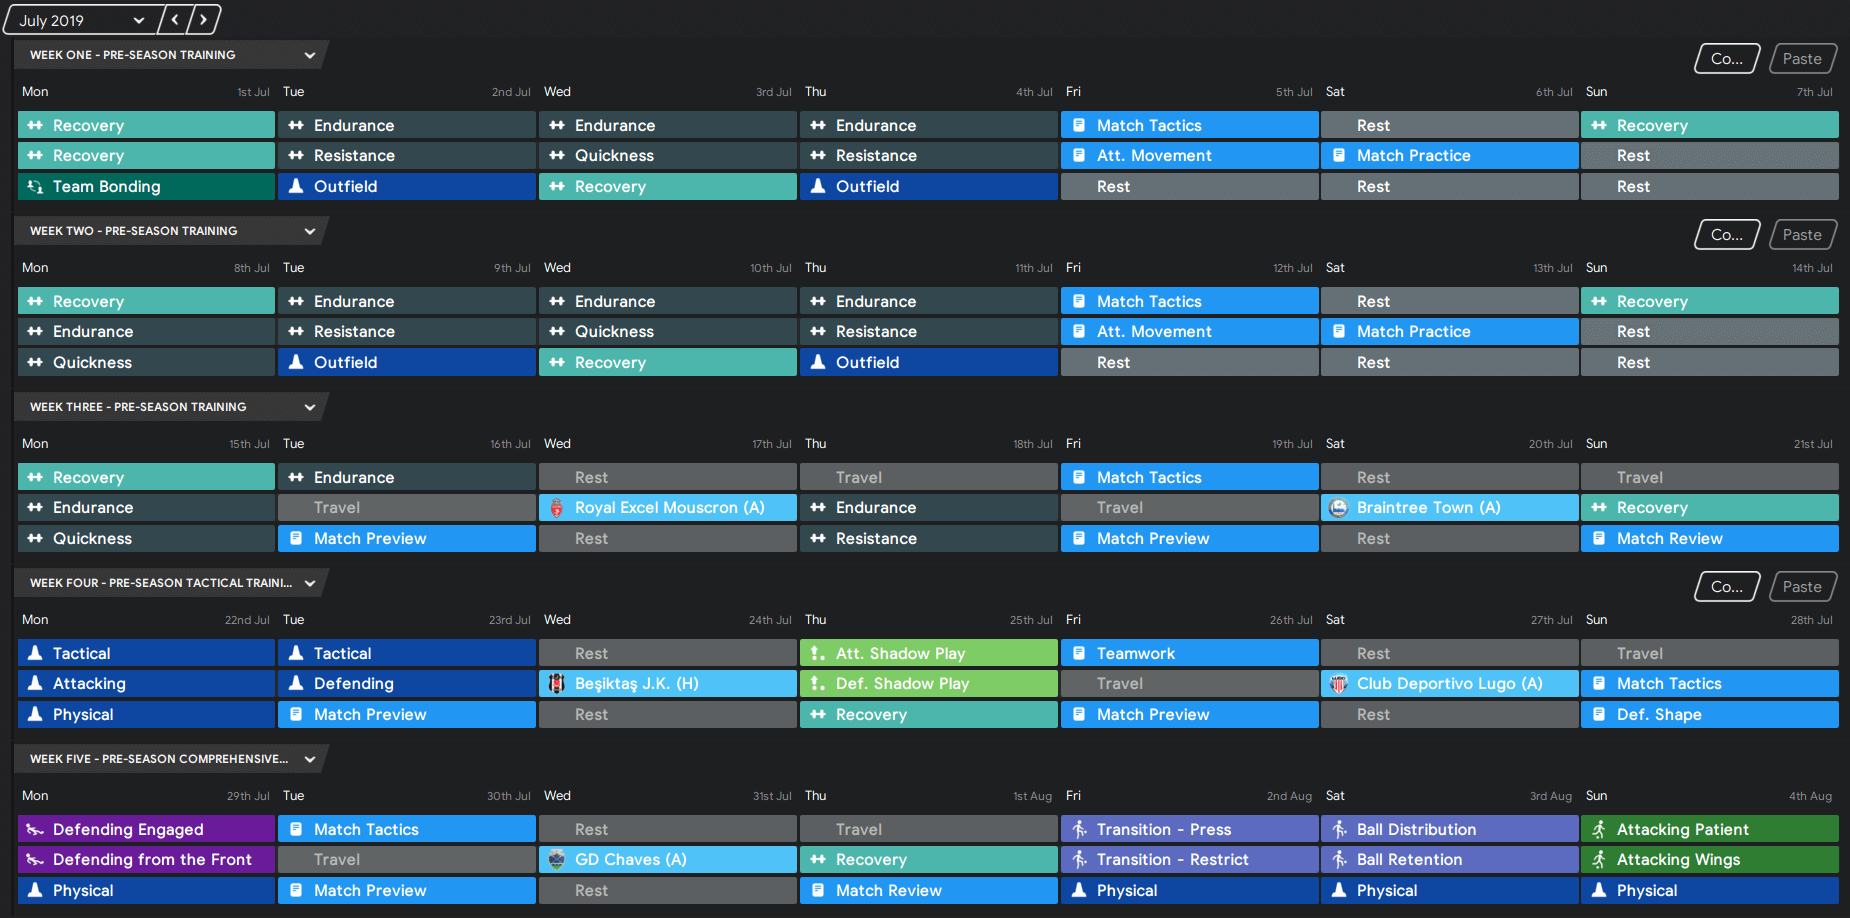 FM 2020 Training Schedules pre-season